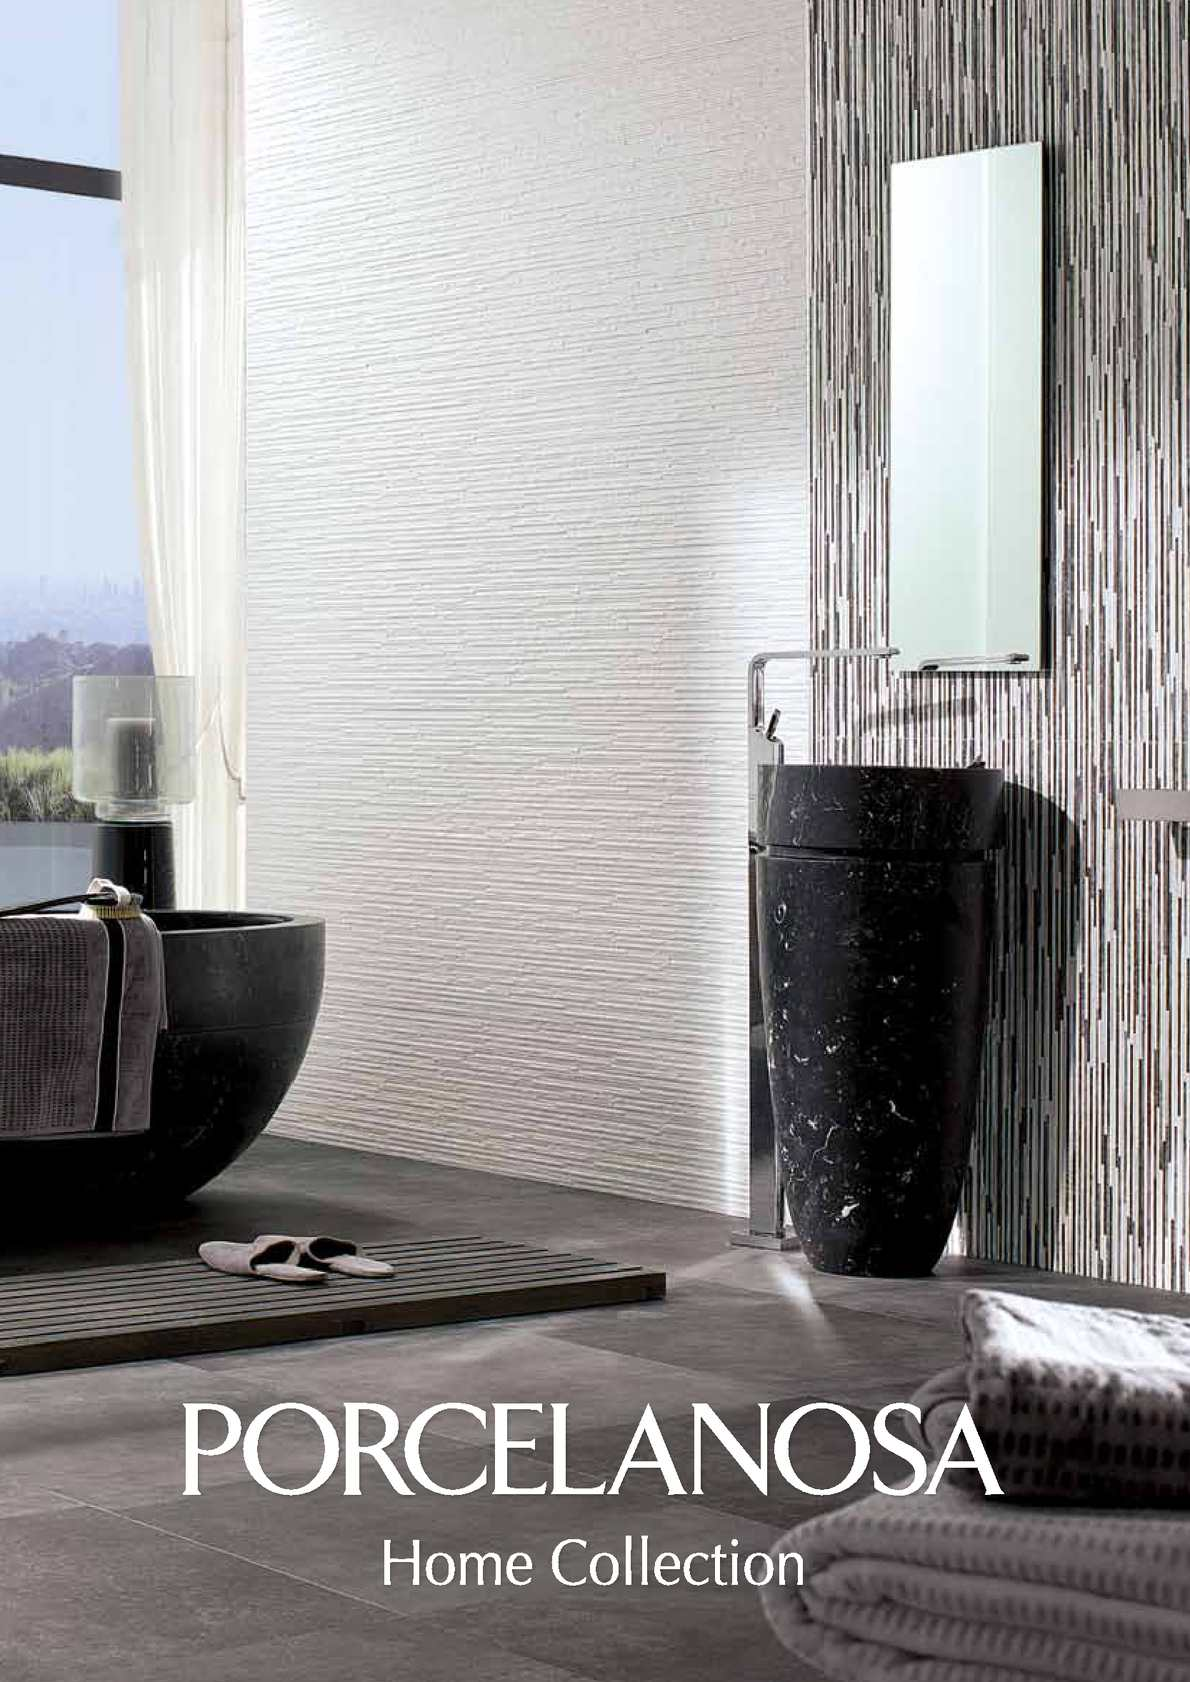 Calam o catalogue porcelanosa home collection for Porcelanosa catalogue carrelage